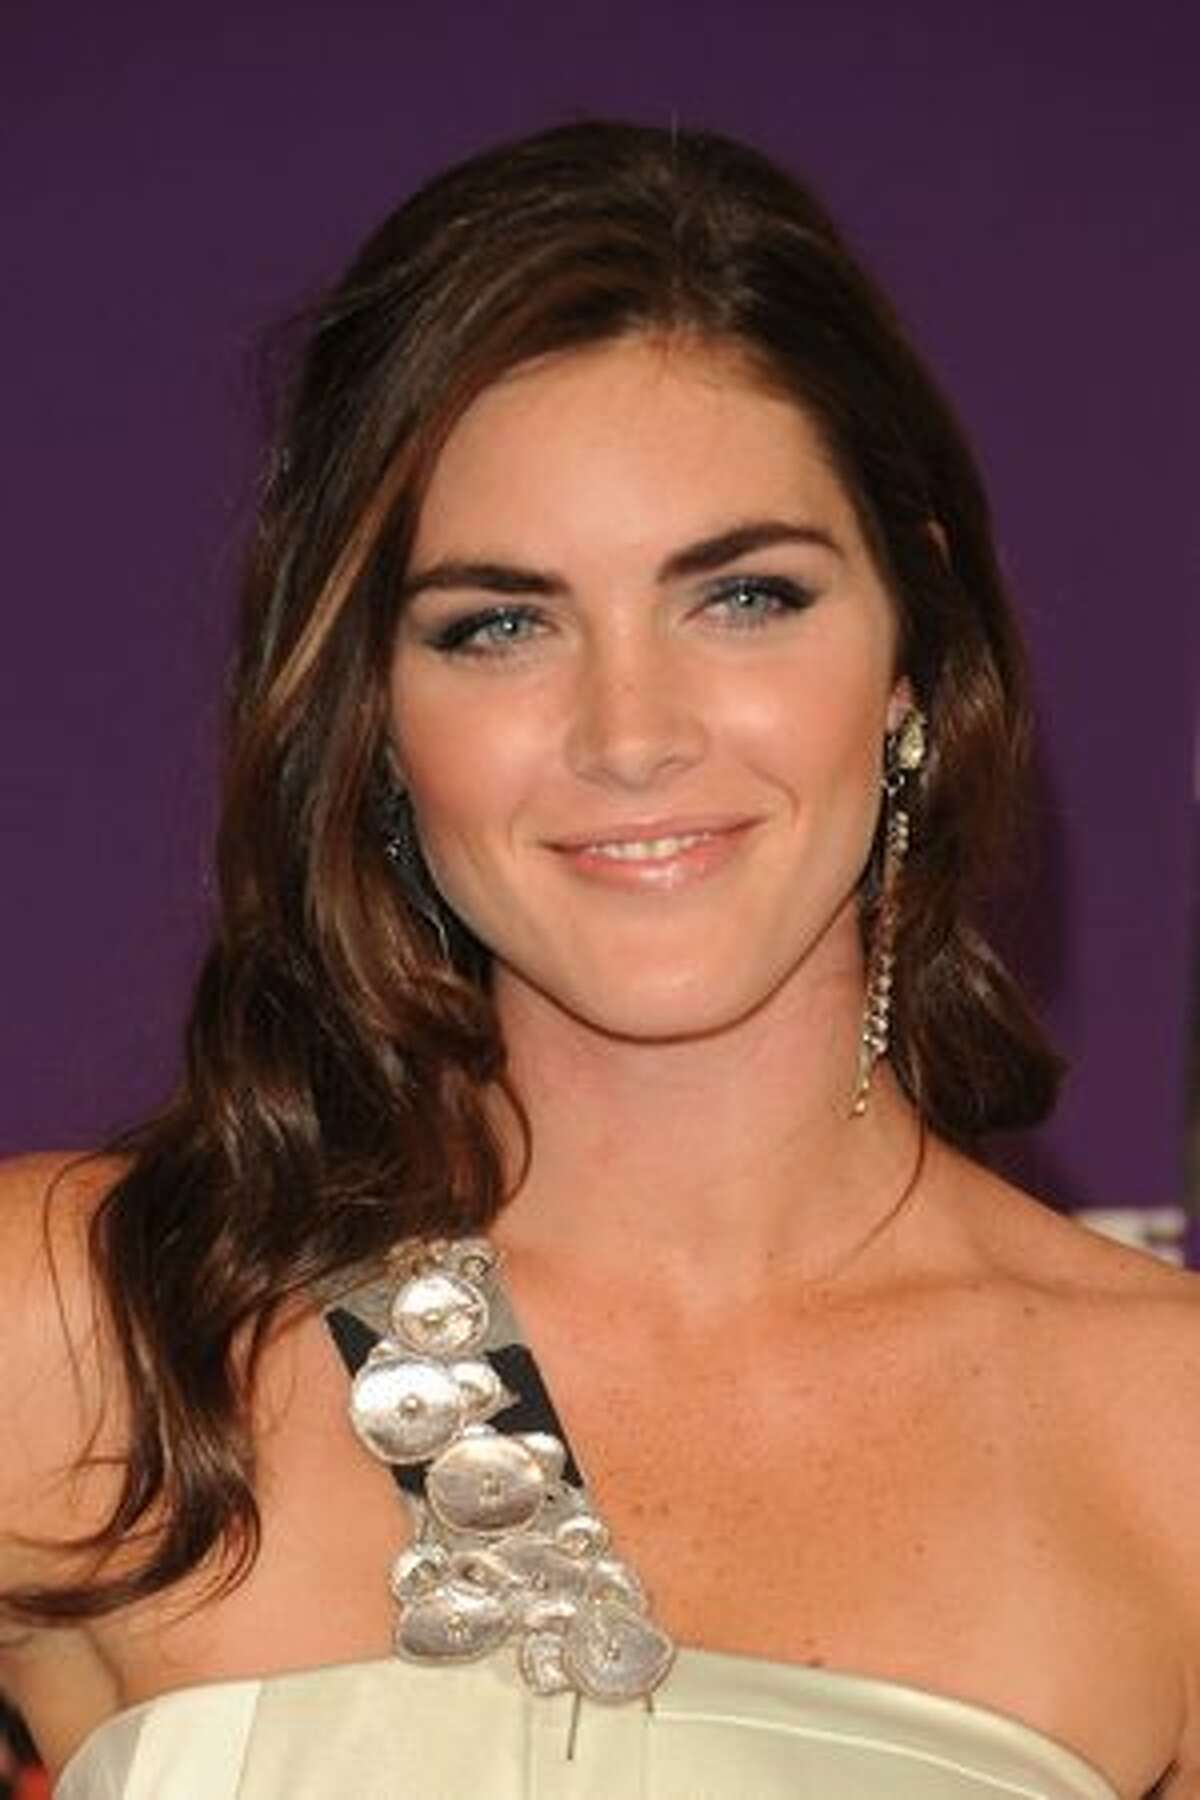 Model Hilary Rhoda attends.